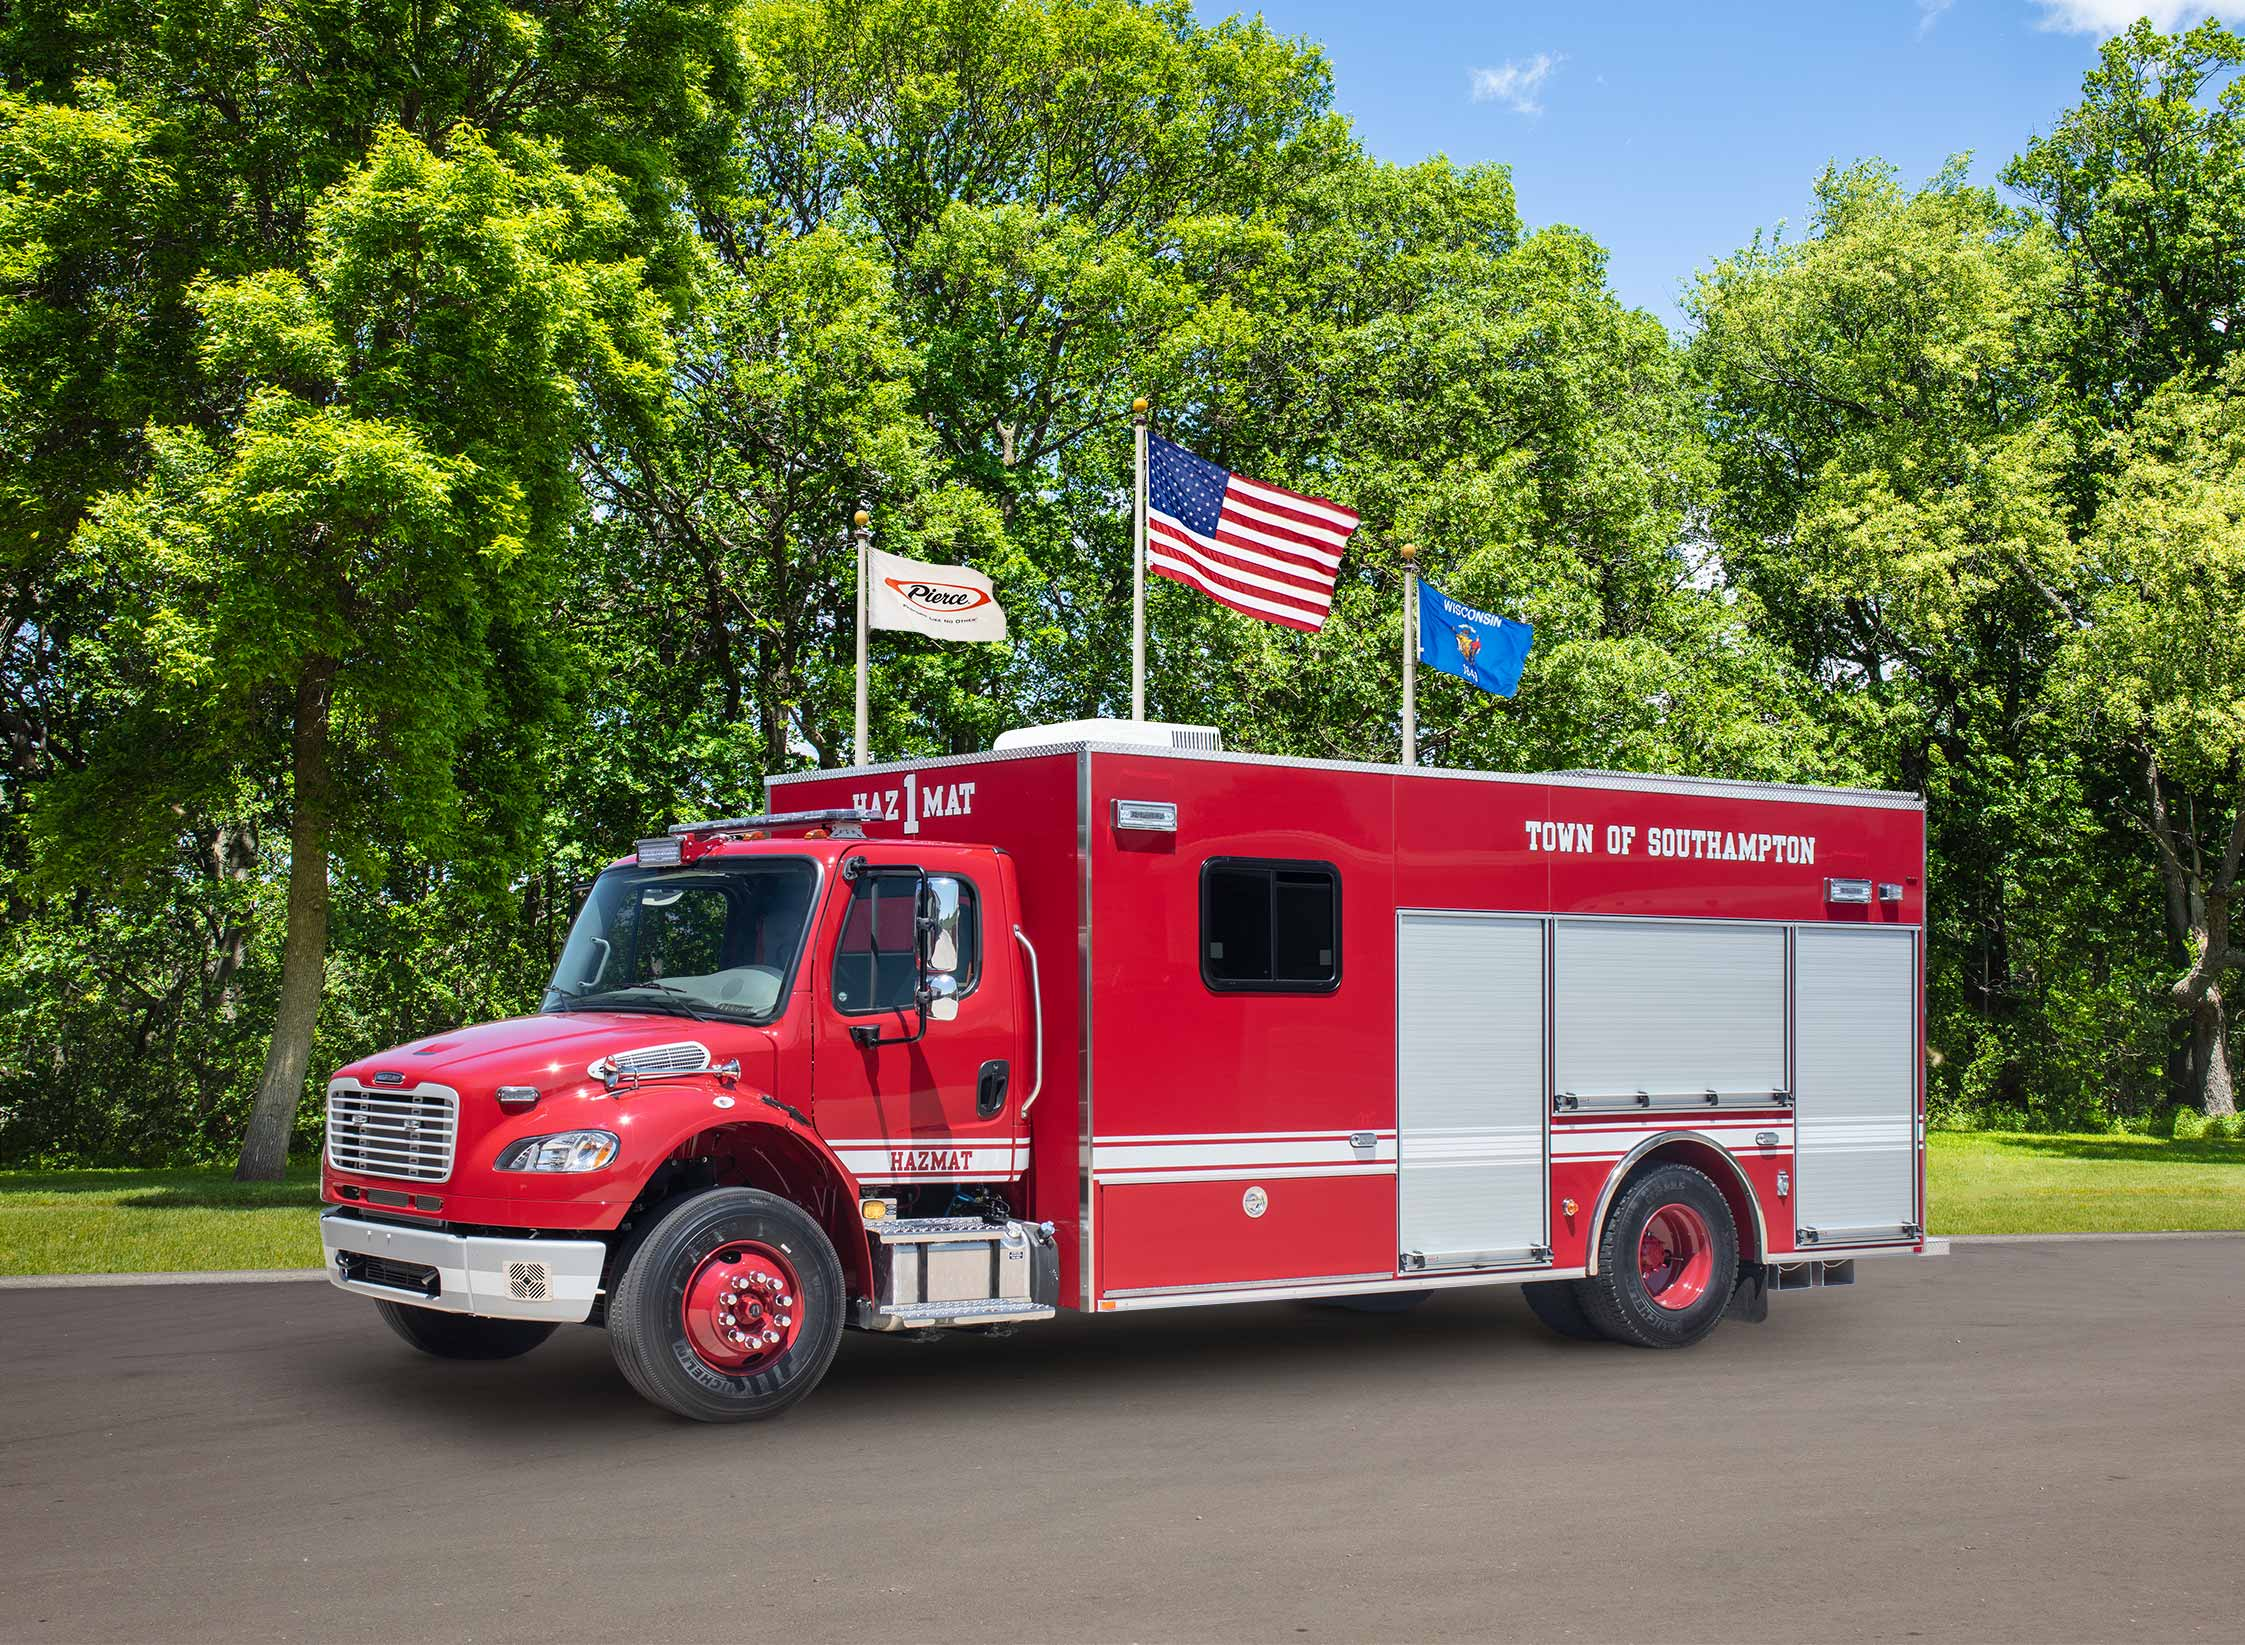 Town of Southampton Fire Marshall - Rescue